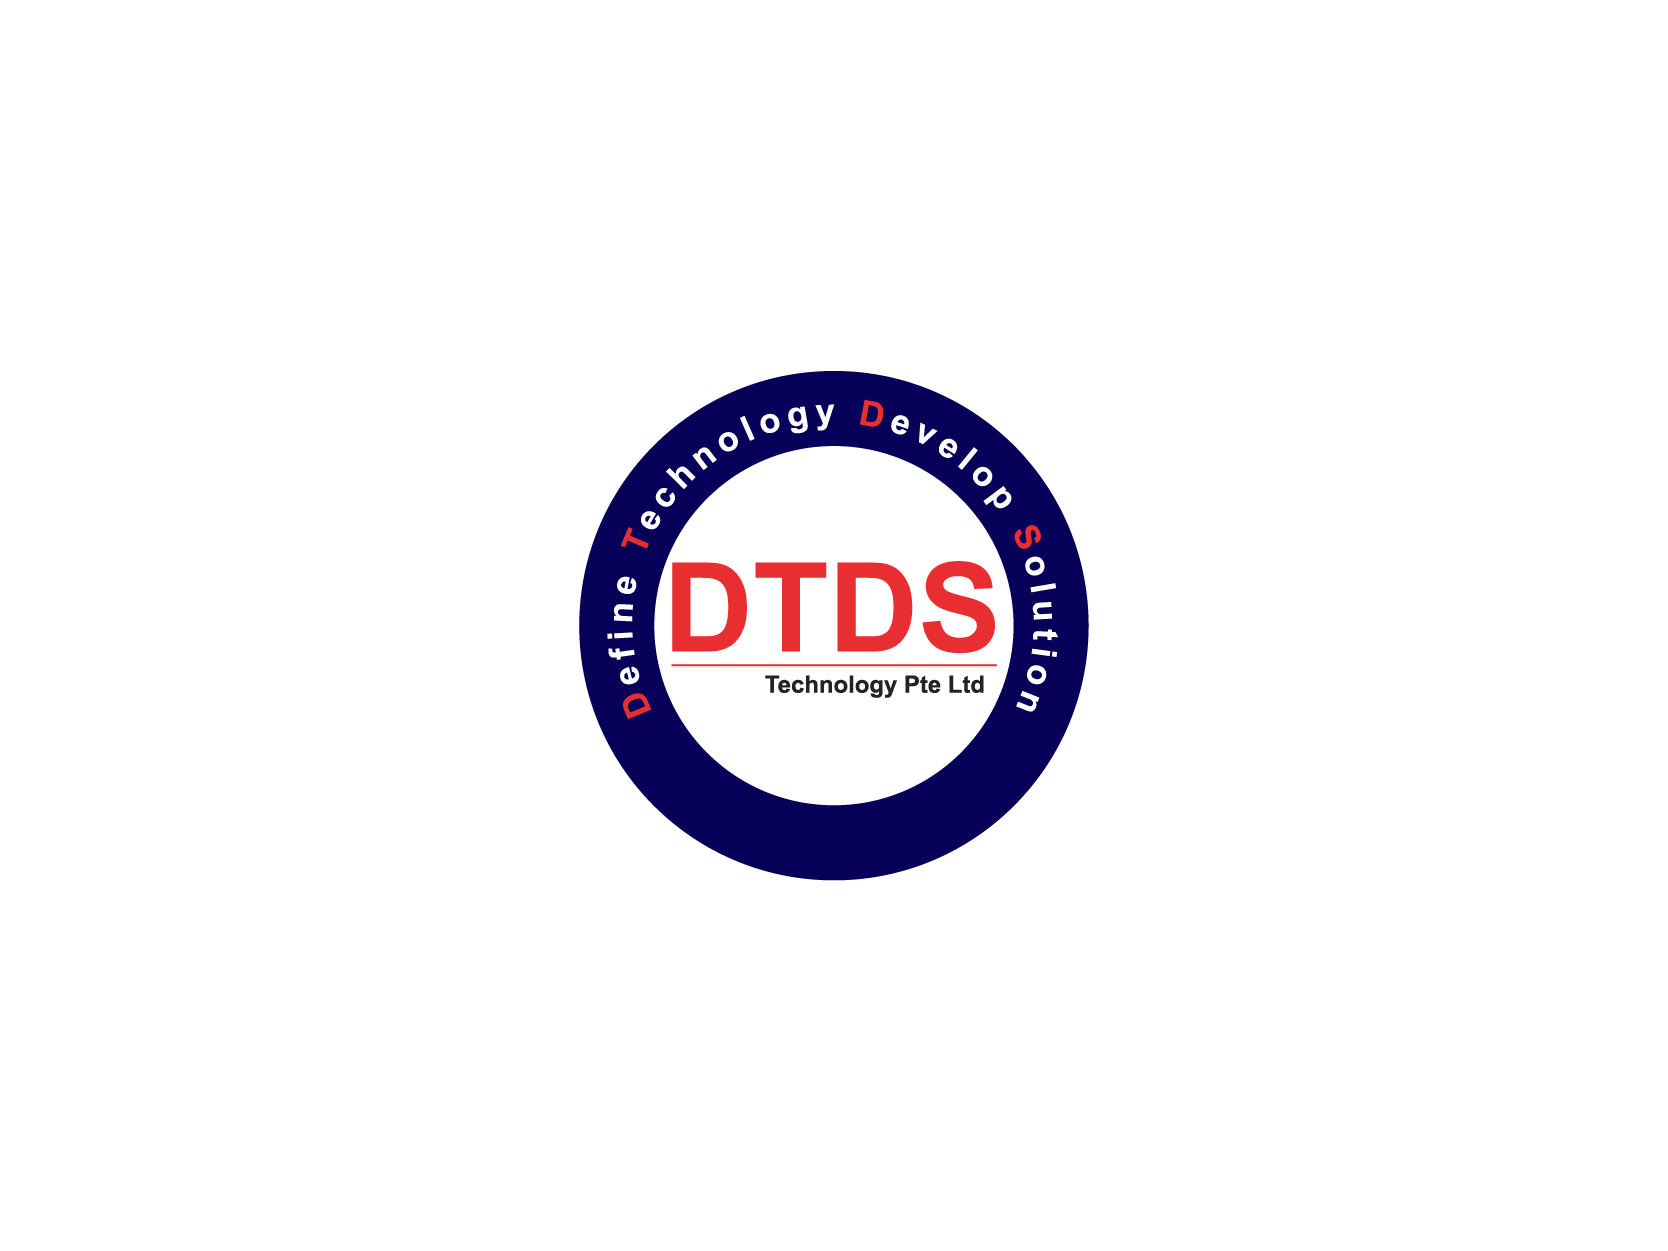 DTDS Technology Pte Ltd Logo Design